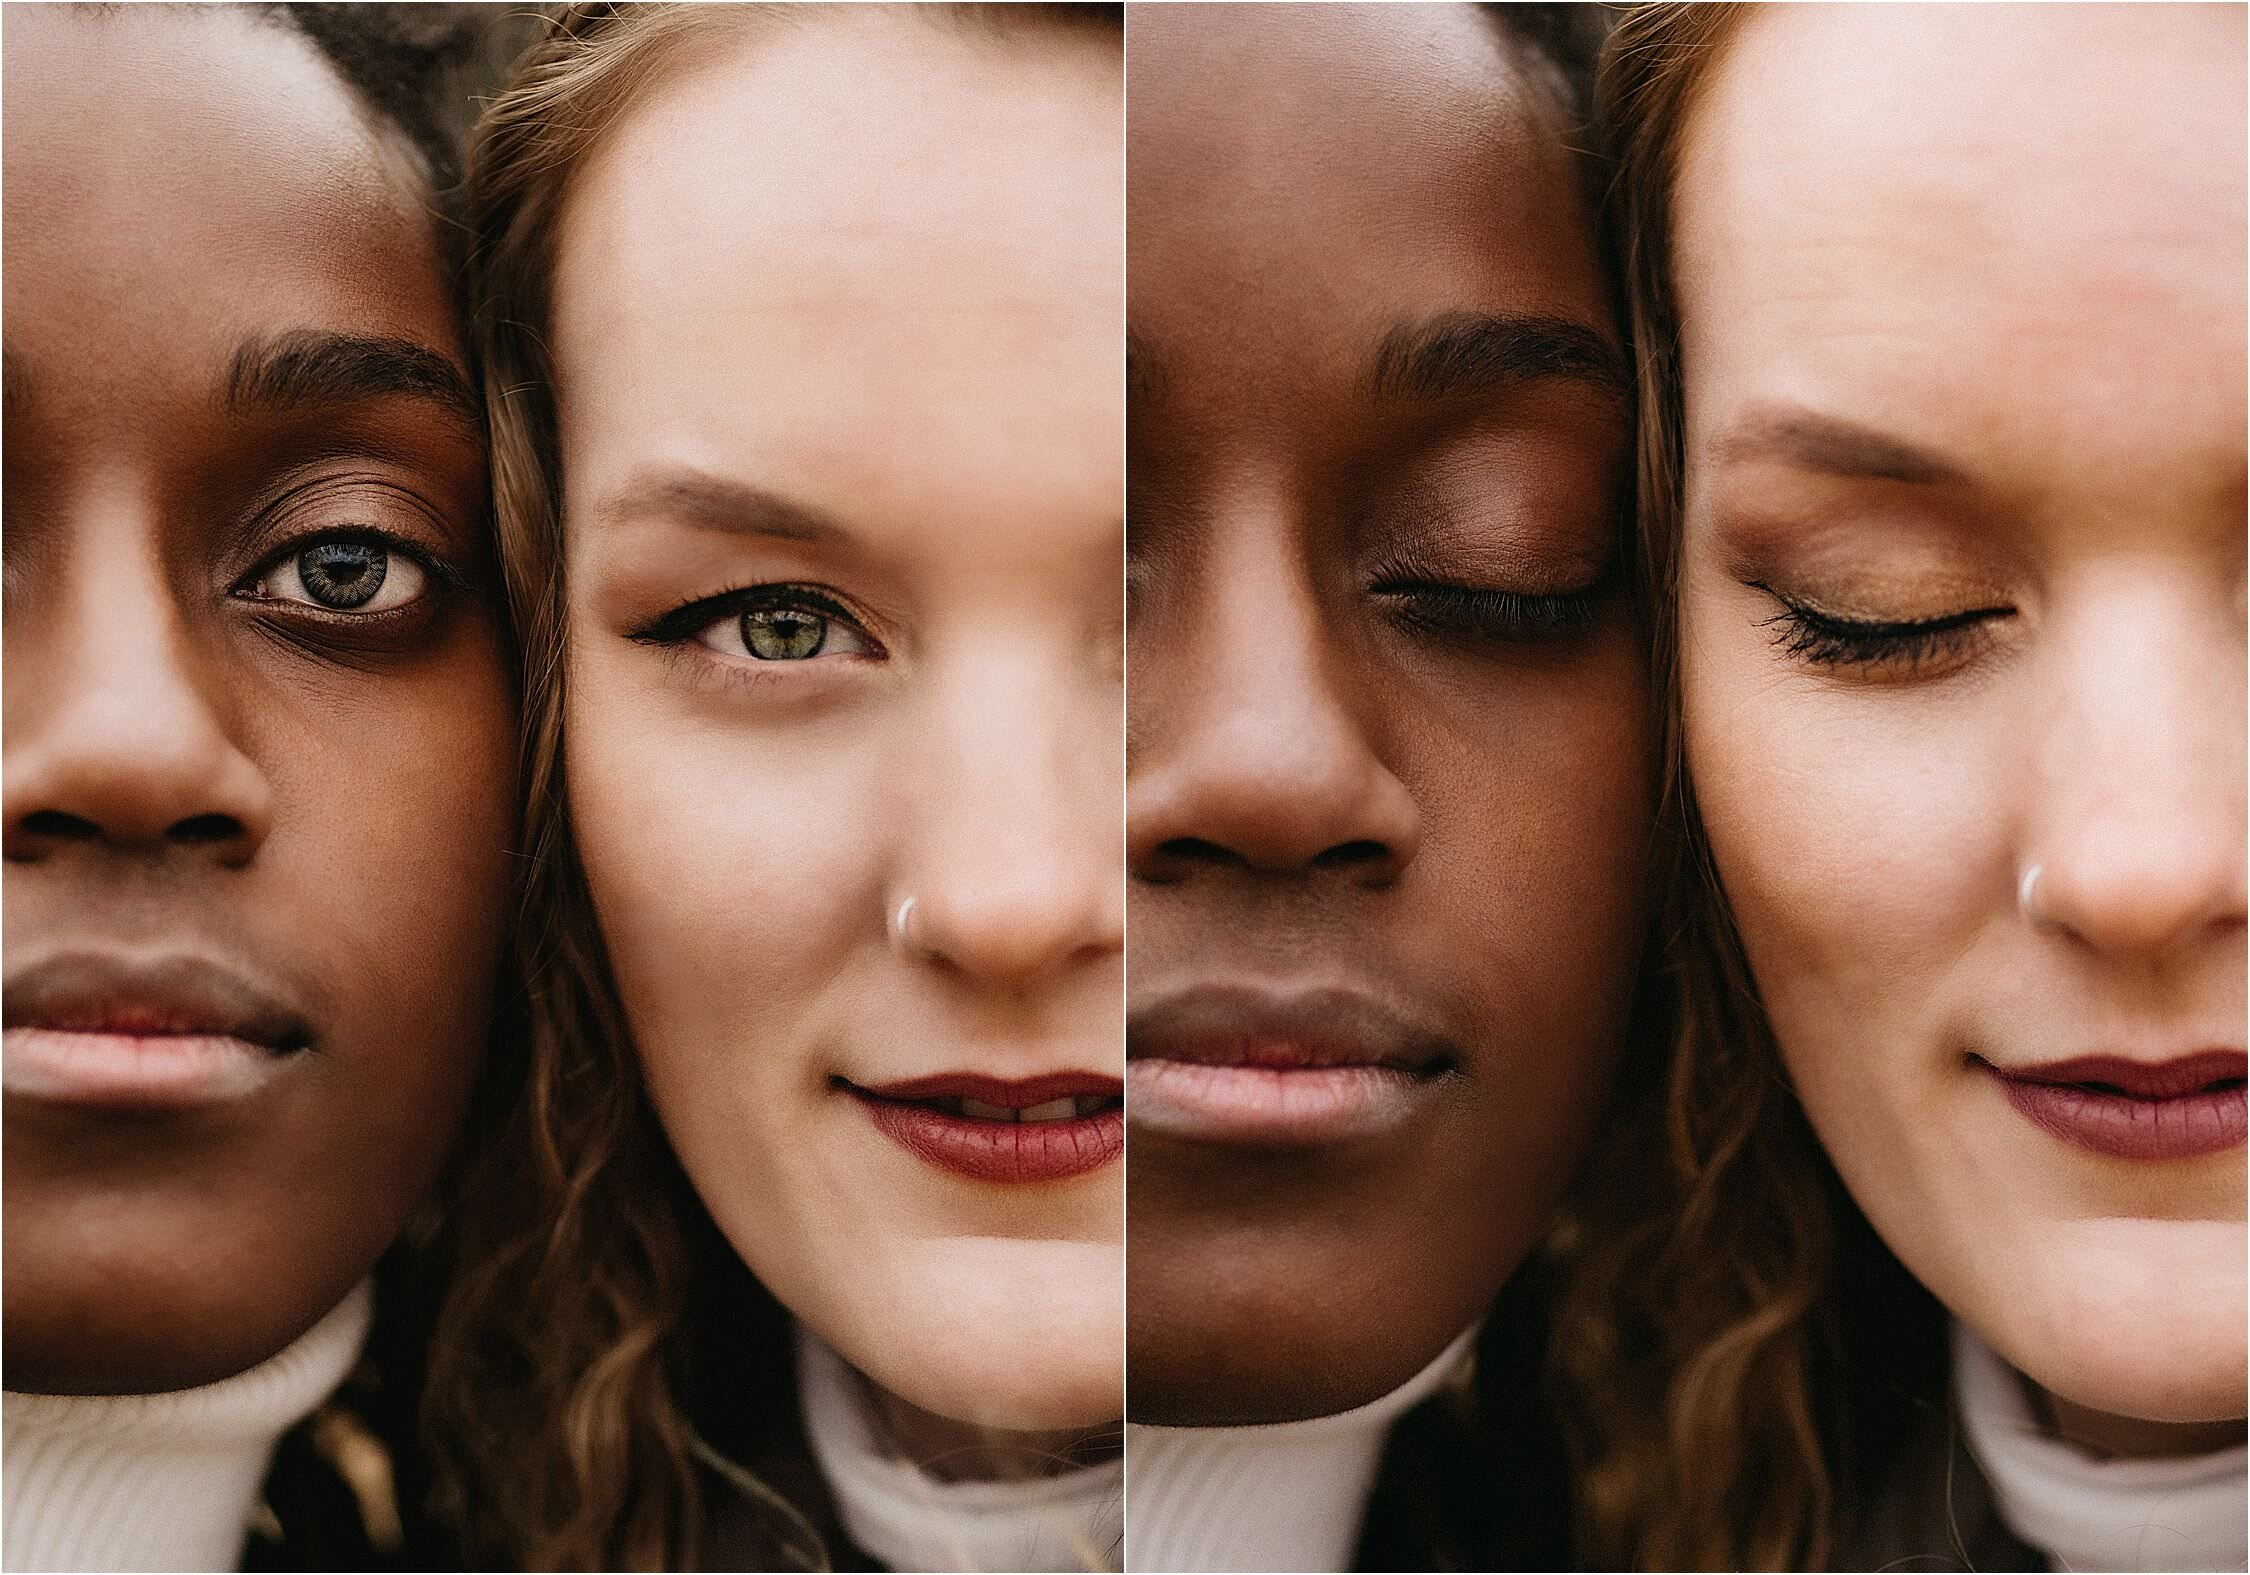 a creative portrait of a lesbian couple where you only see half of their faces